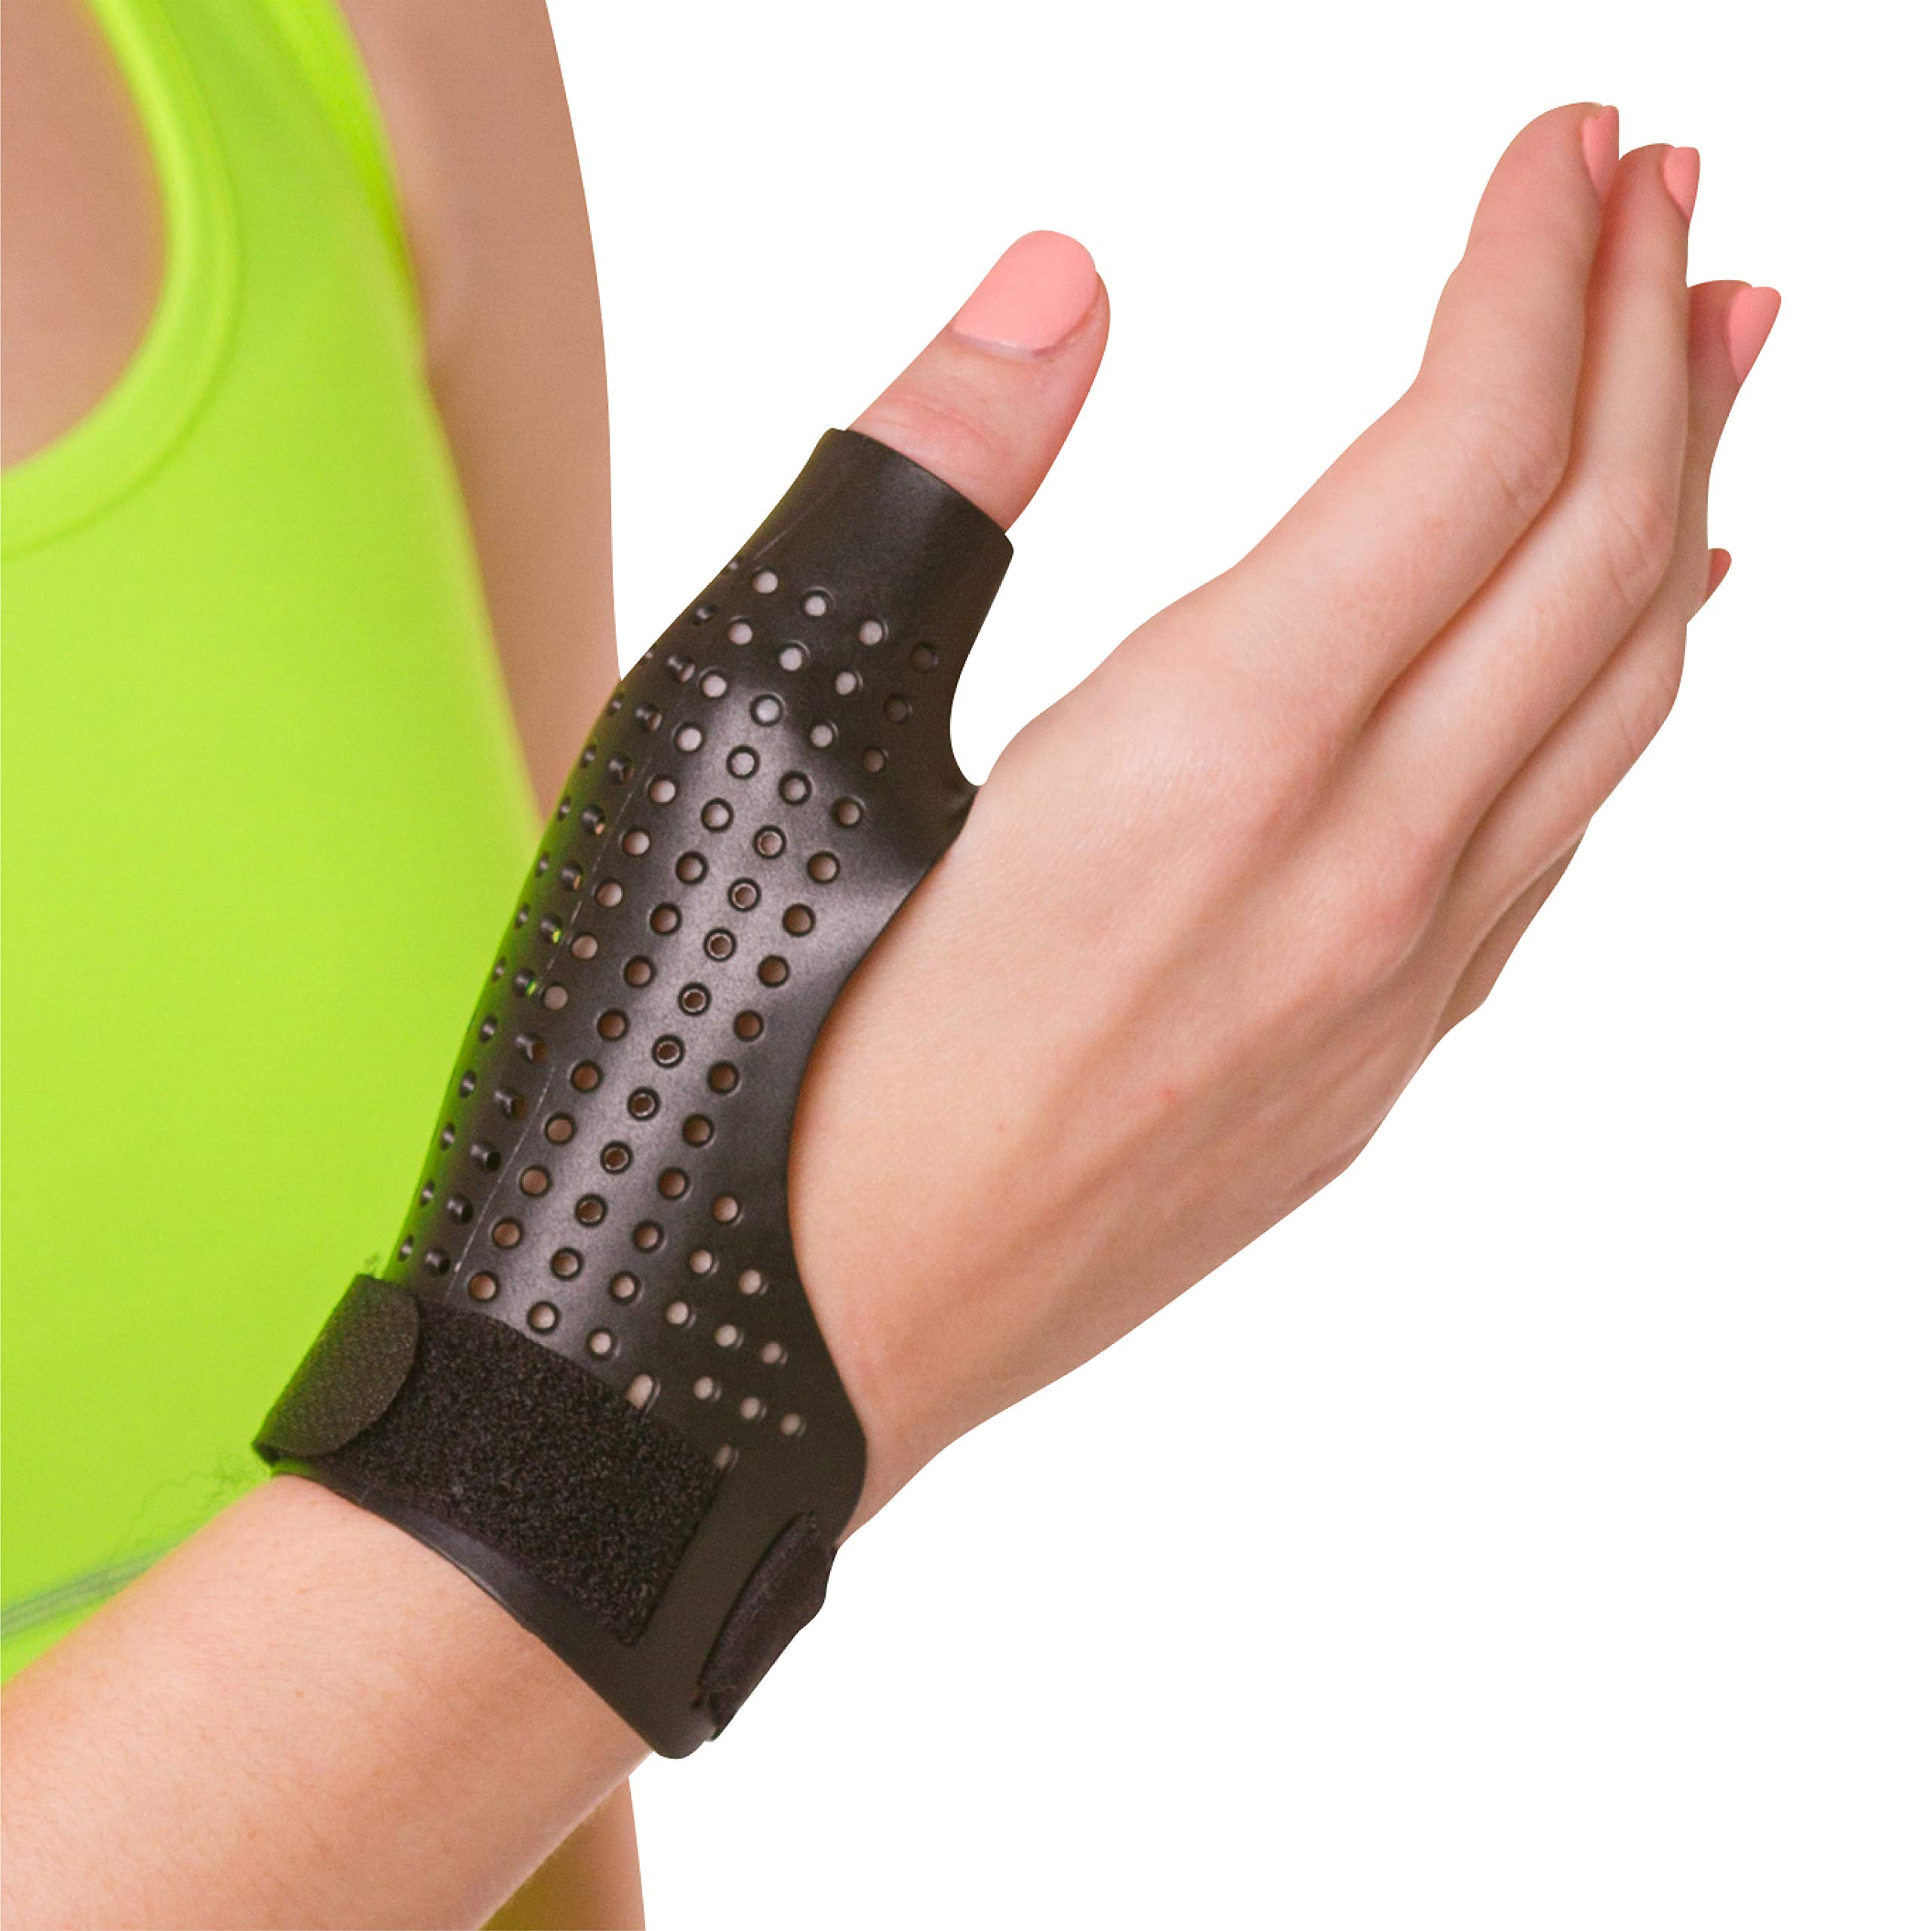 BraceAbility Hard Plastic Thumb Splint | Arthritis Treatment Brace to Immobilize & Stabilize CMC, Basal and MCP Joints for Trigger Thumb, Tendonitis Pain, Sprains (Medium - Right Hand) by BraceAbility